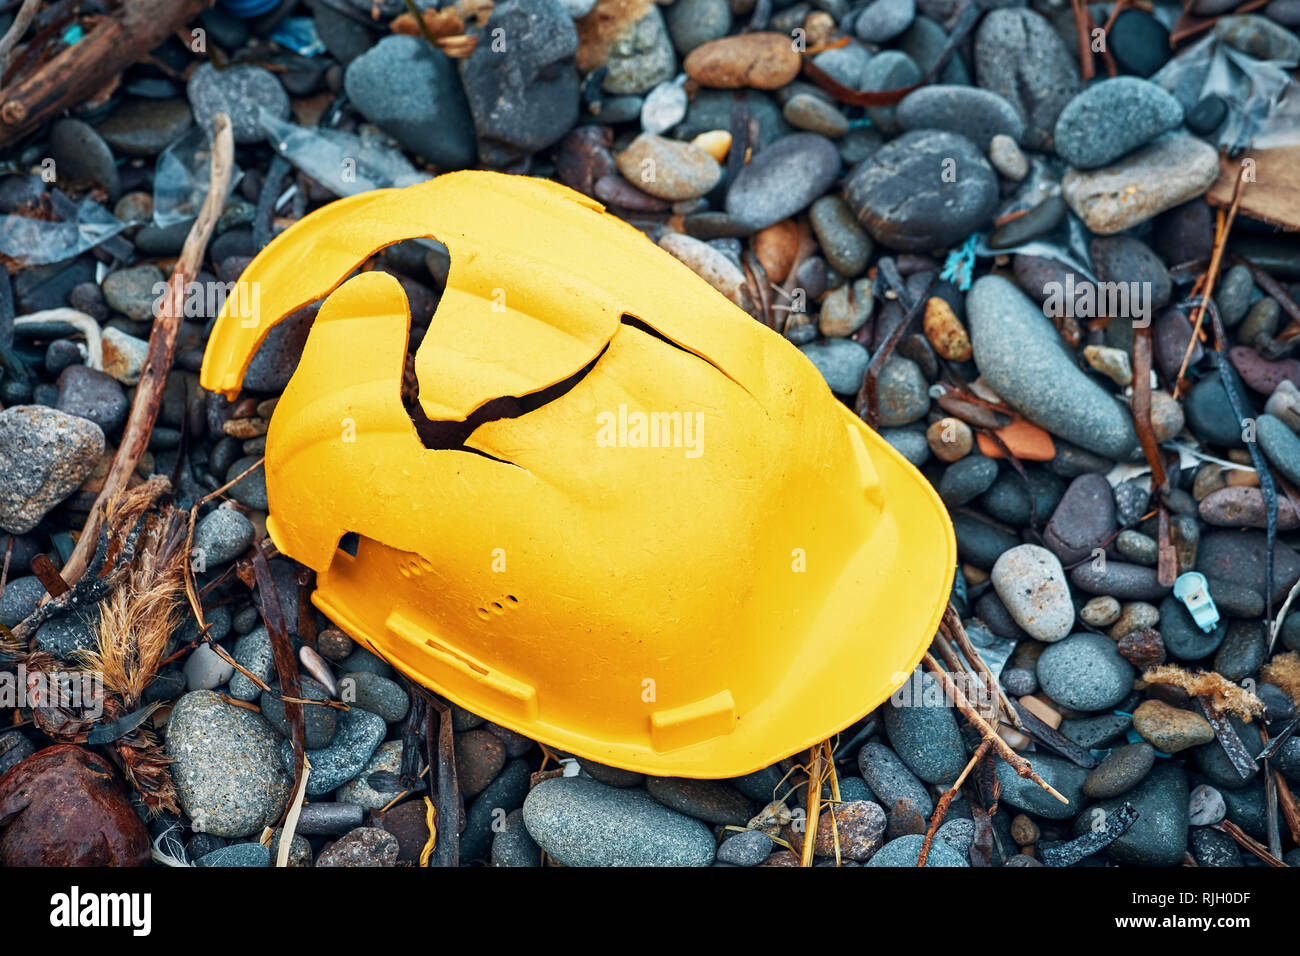 Cracked work helmet on the floor covered with pebble stones. Concept of work accident. - Stock Image